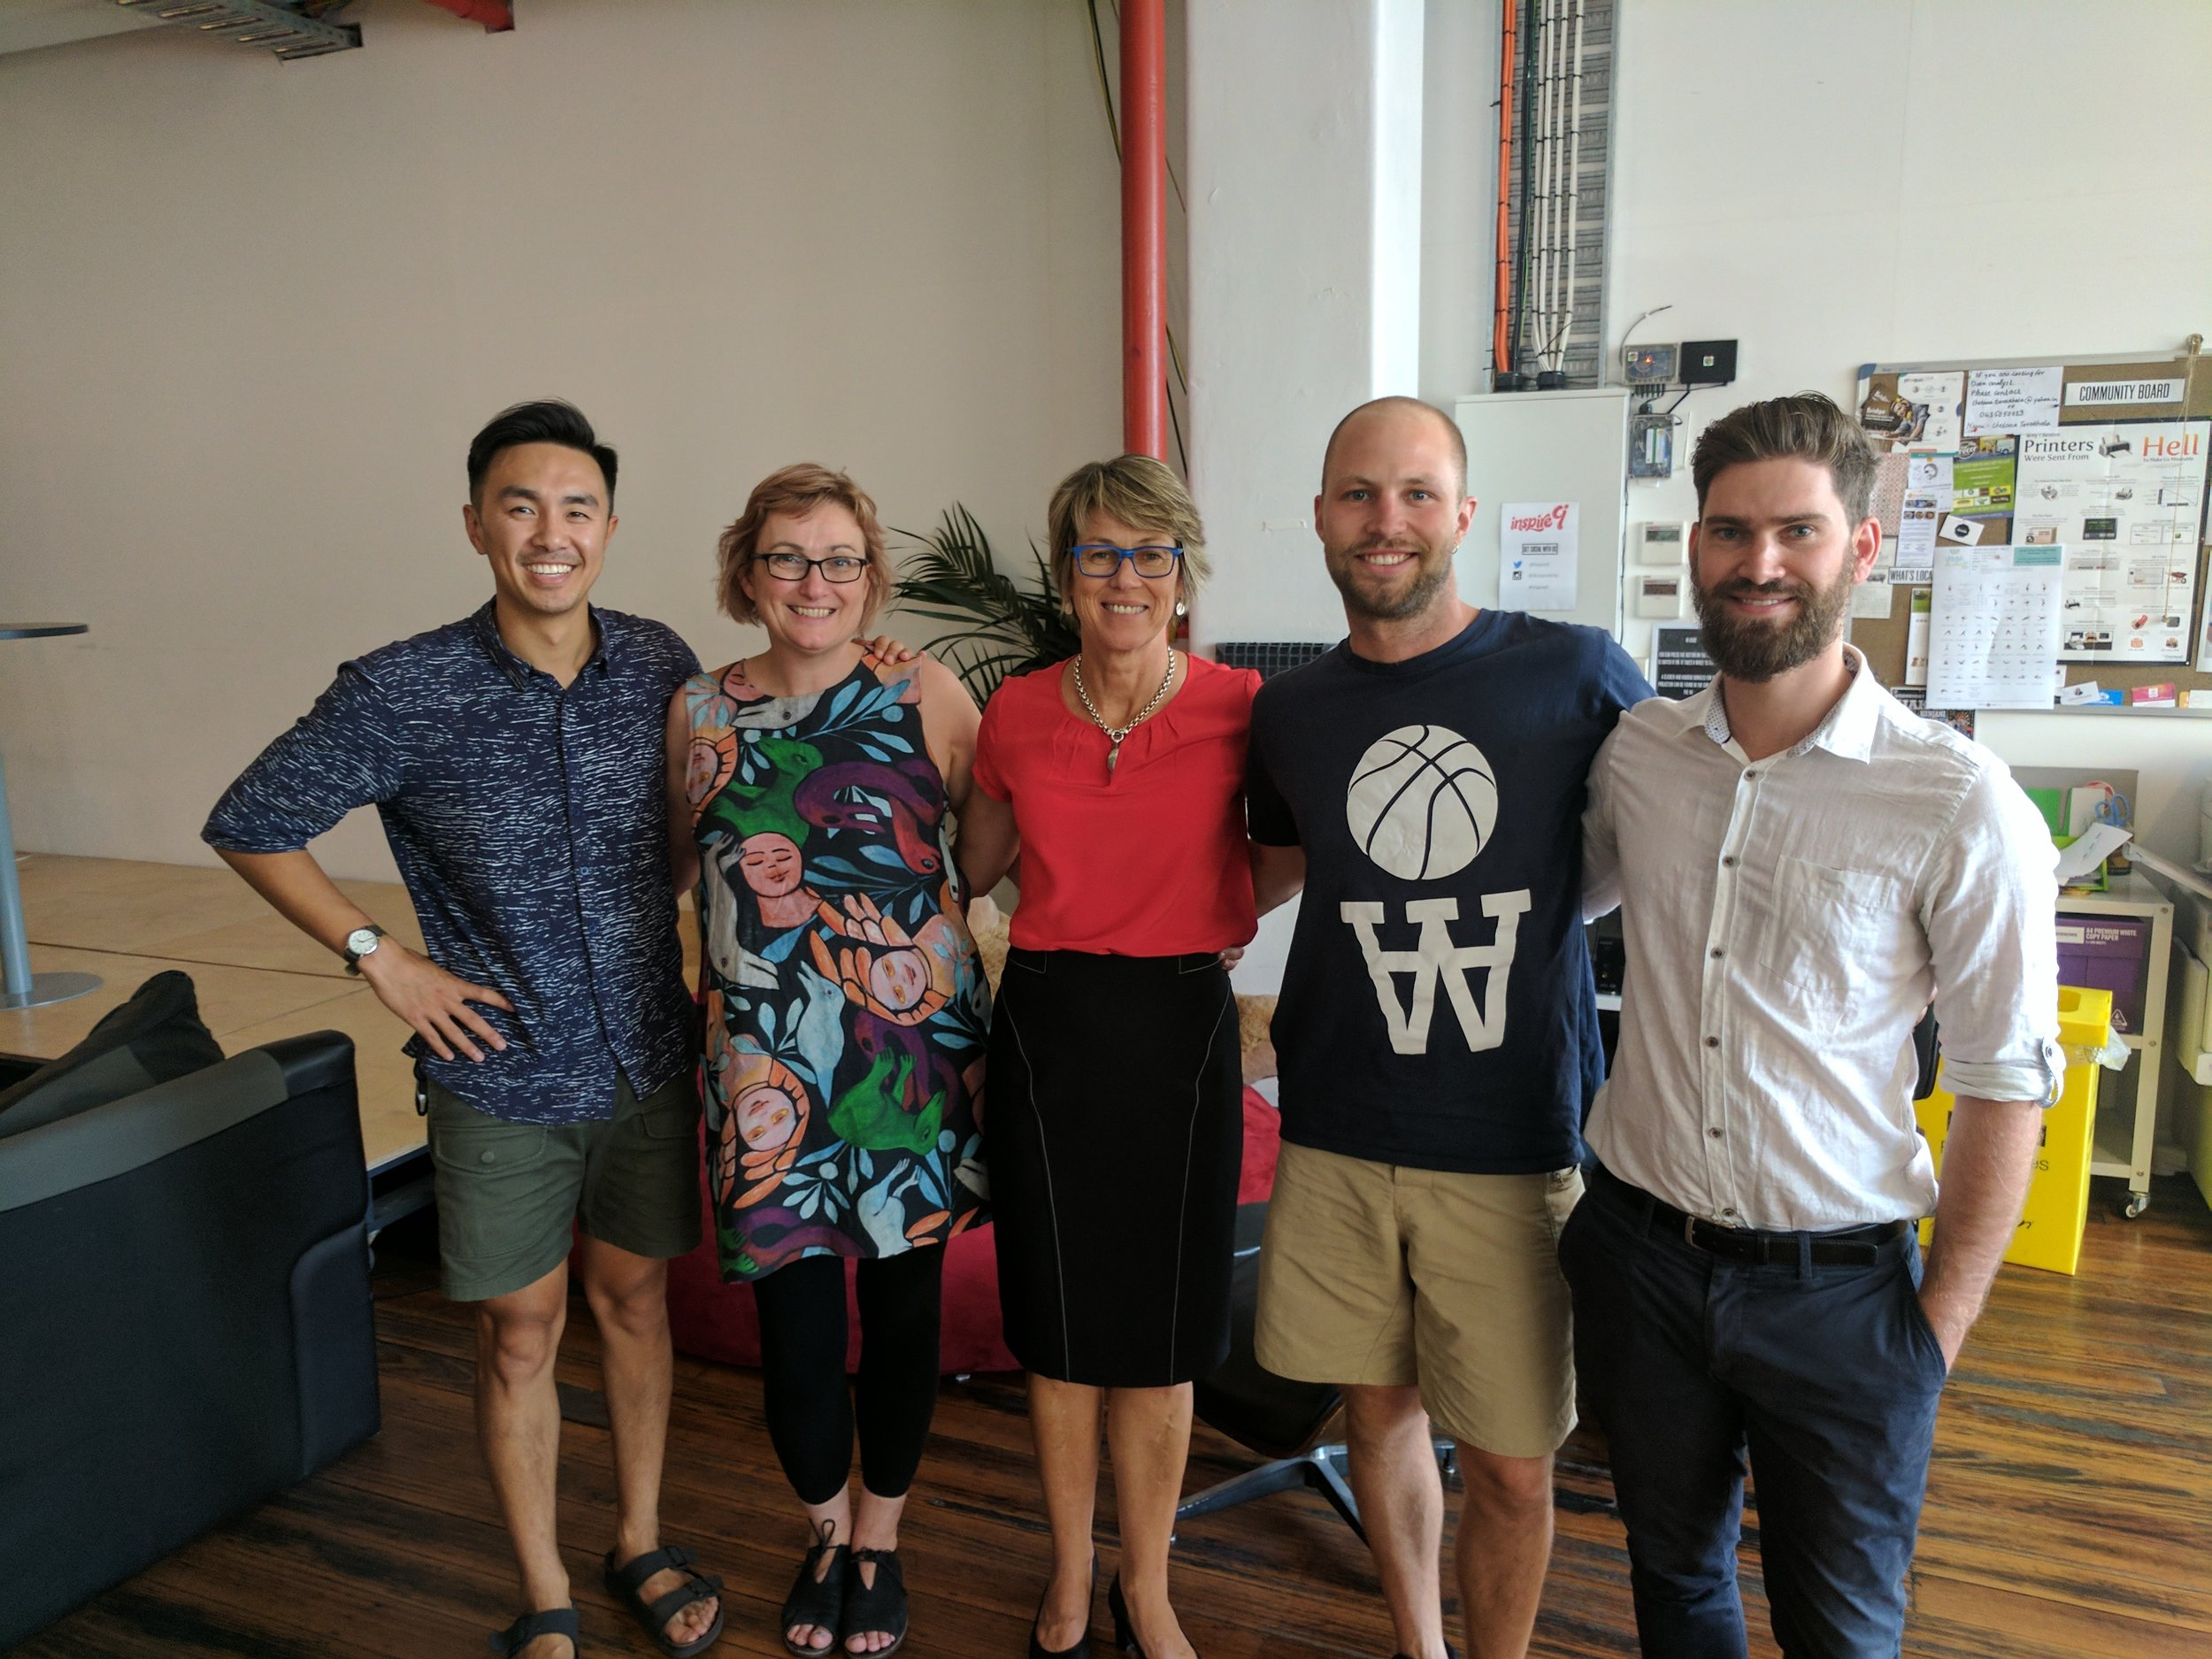 Marion, Janet and Alex meet with members of the Limbr team including CEO and Founder David Chung (far left)and Ops Manager Sandy Buchanon (middle right)